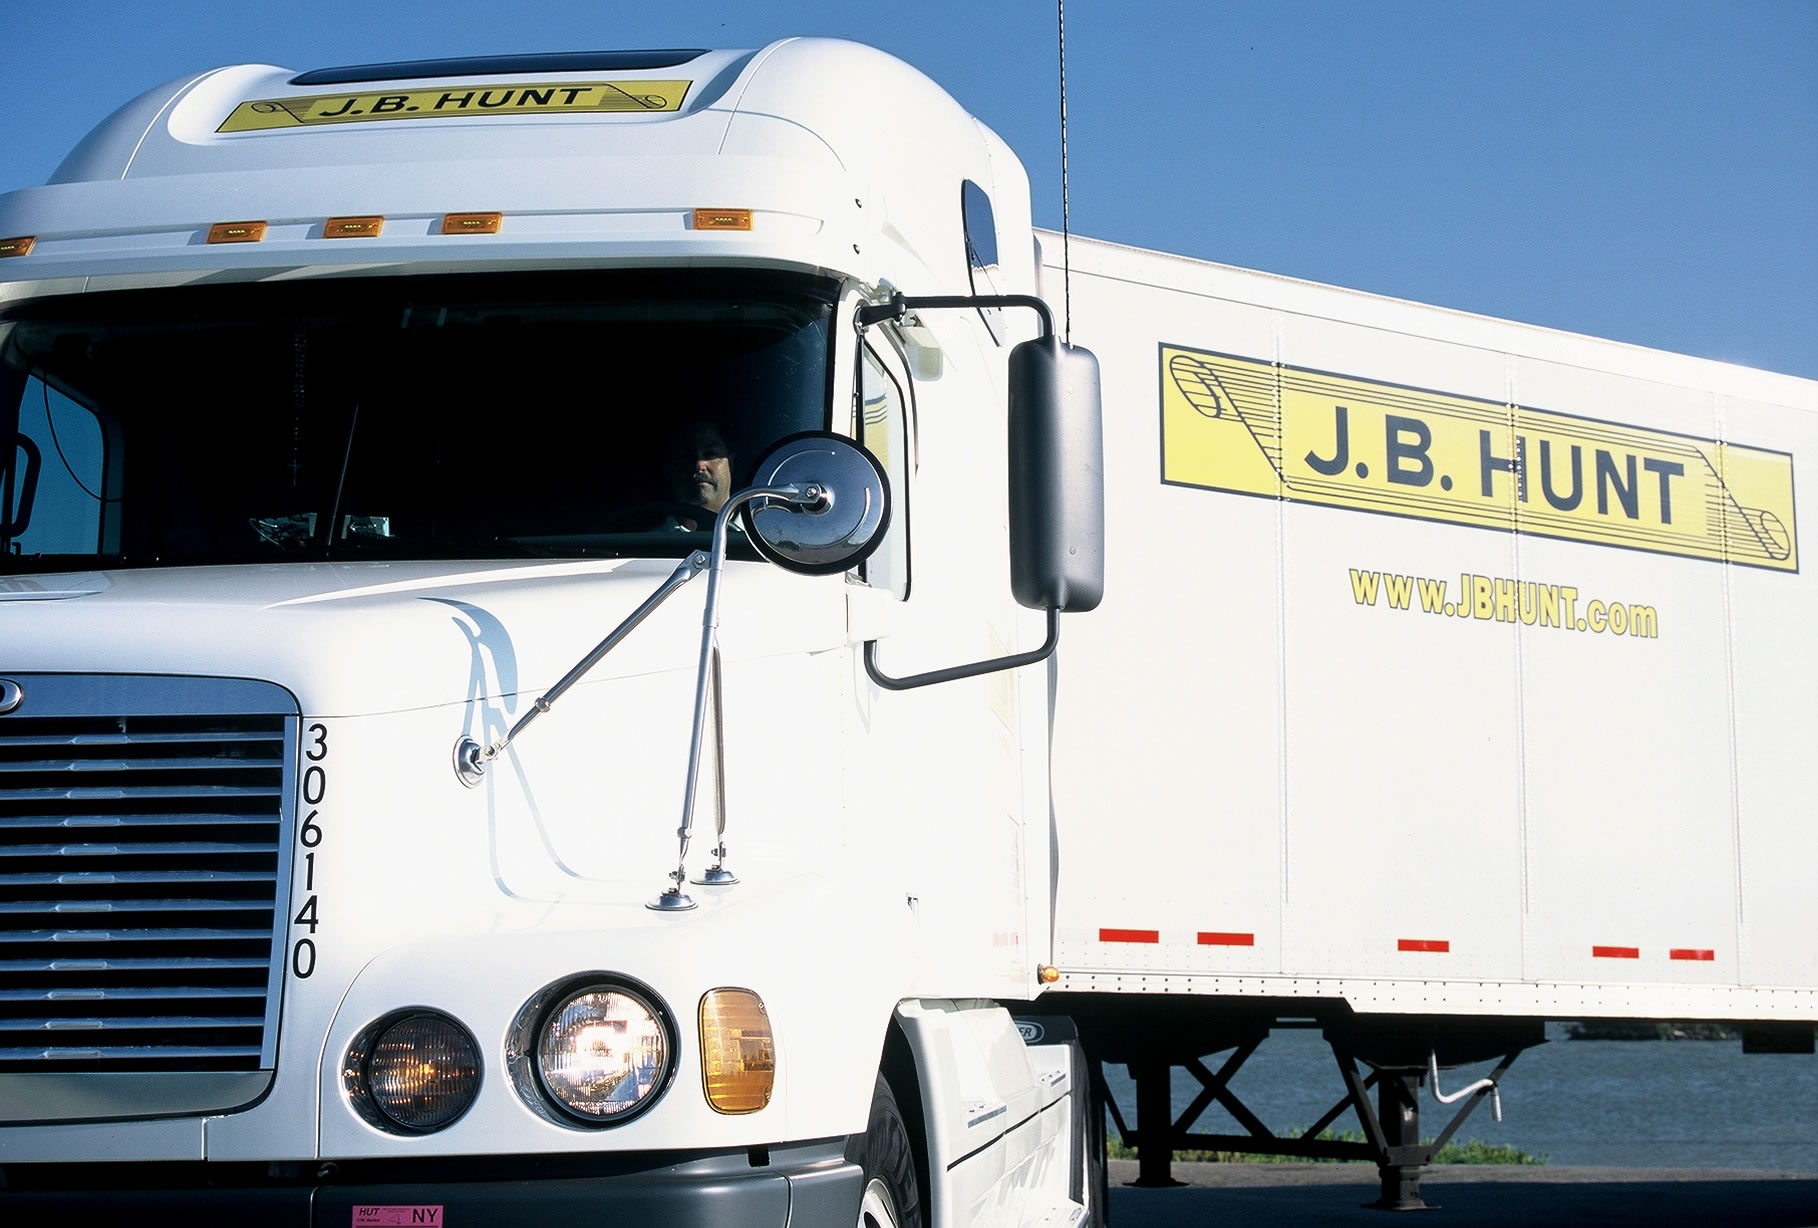 JB Hunt hits trucking software provider with $3.1 million lawsuit